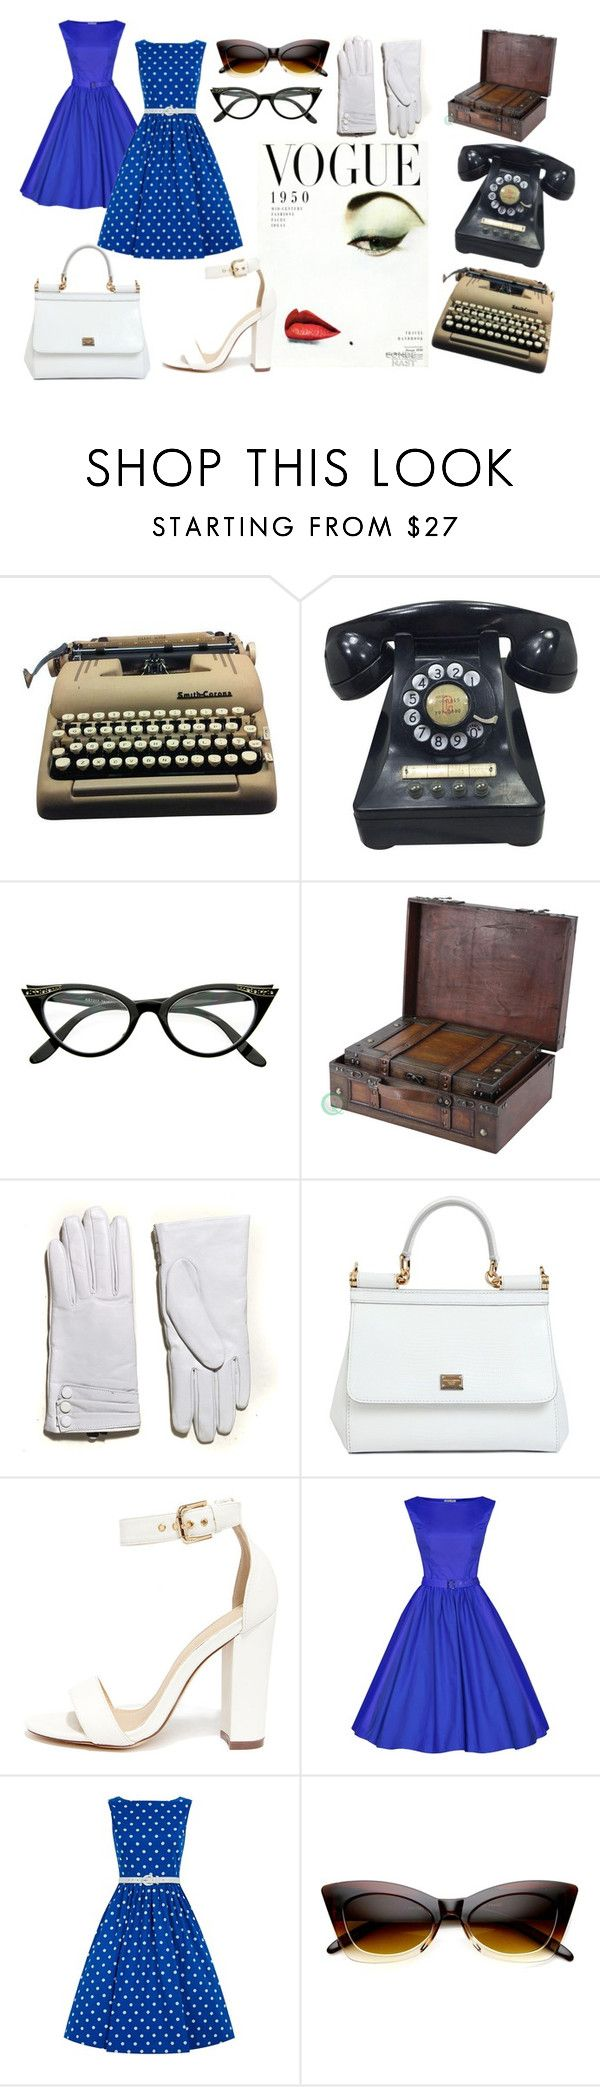 """""""Vintage..."""" by ritty18 on Polyvore featuring Dasein, Dolce&Gabbana, Liliana, vintage, women's clothing, women, female, woman, misses and juniors"""